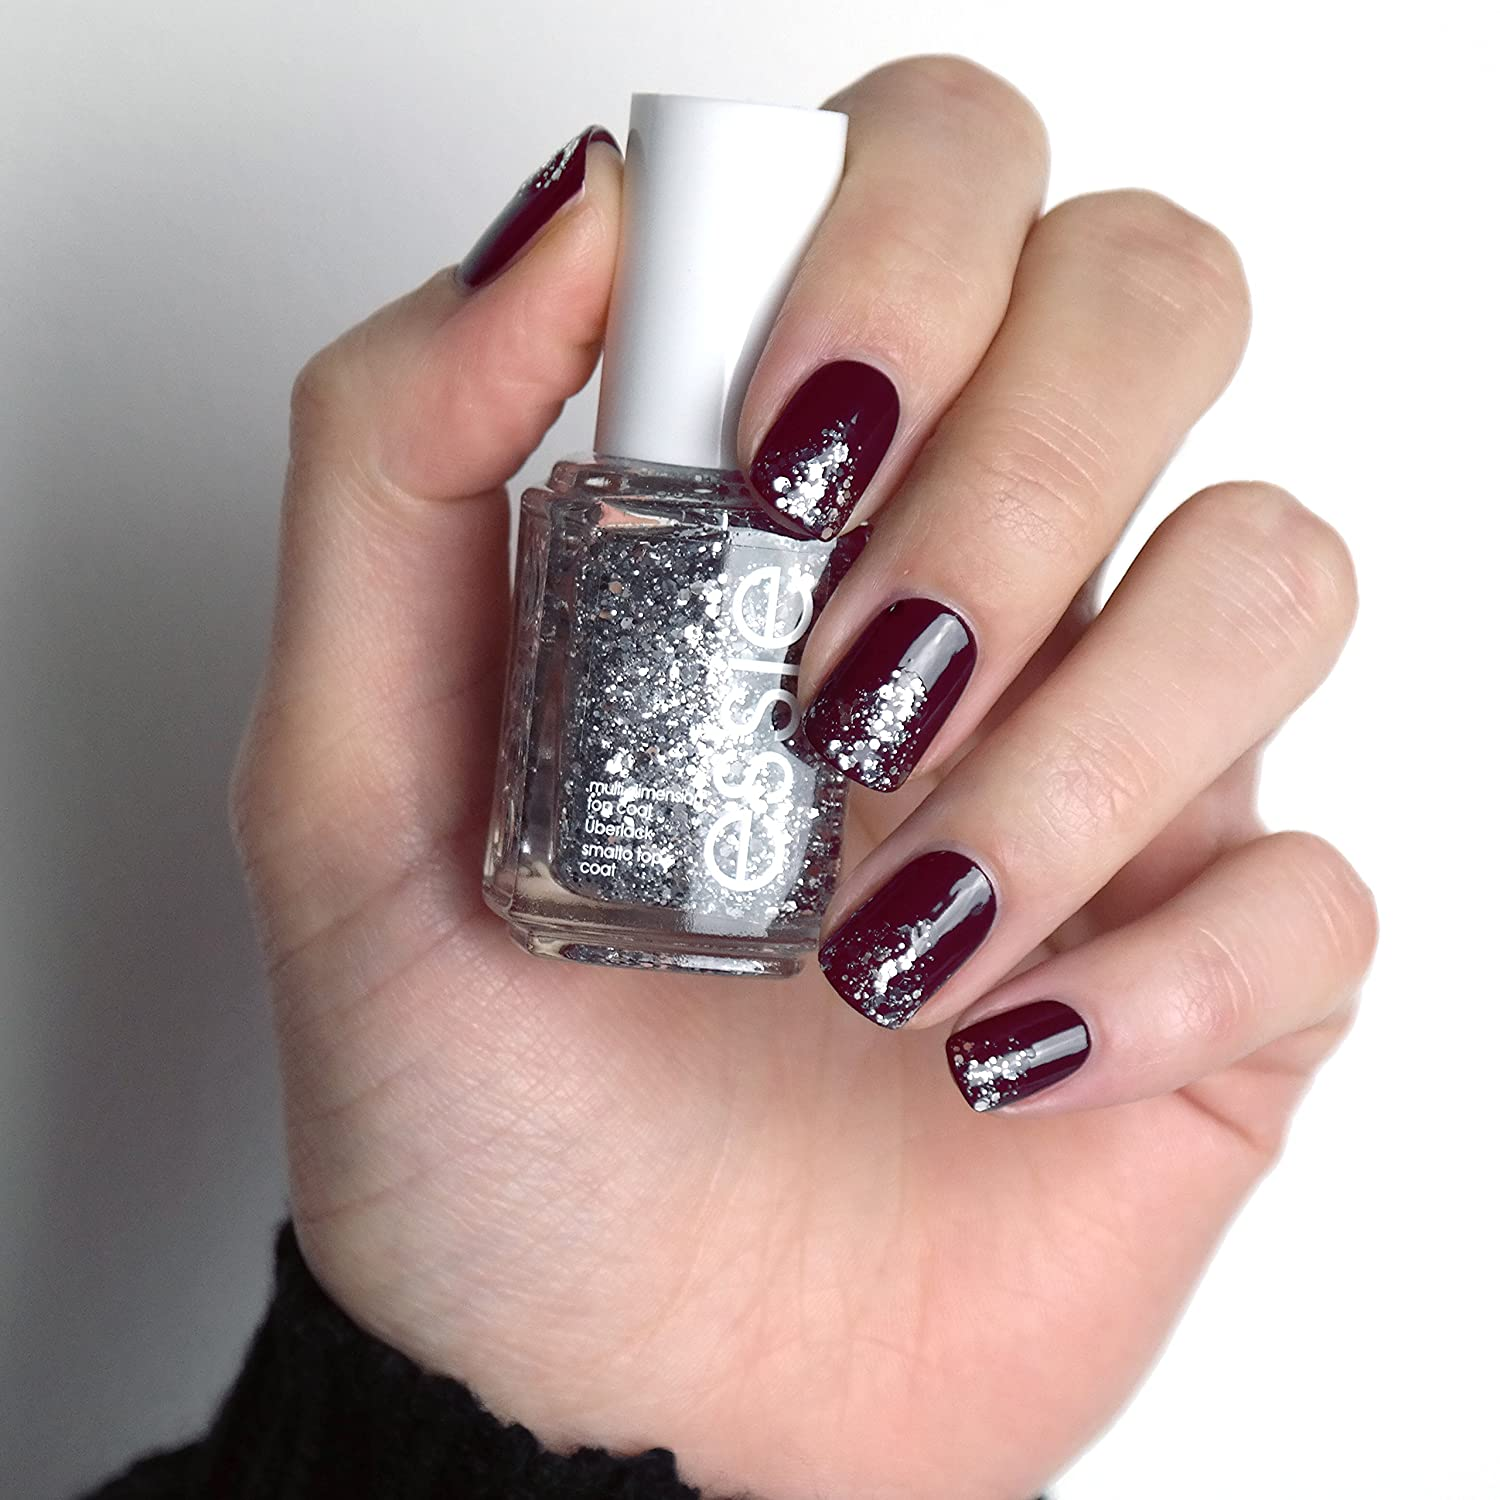 Essie Nagellack Luxeffects Nr 278 Set In Stones 1er Pack 1 X 13